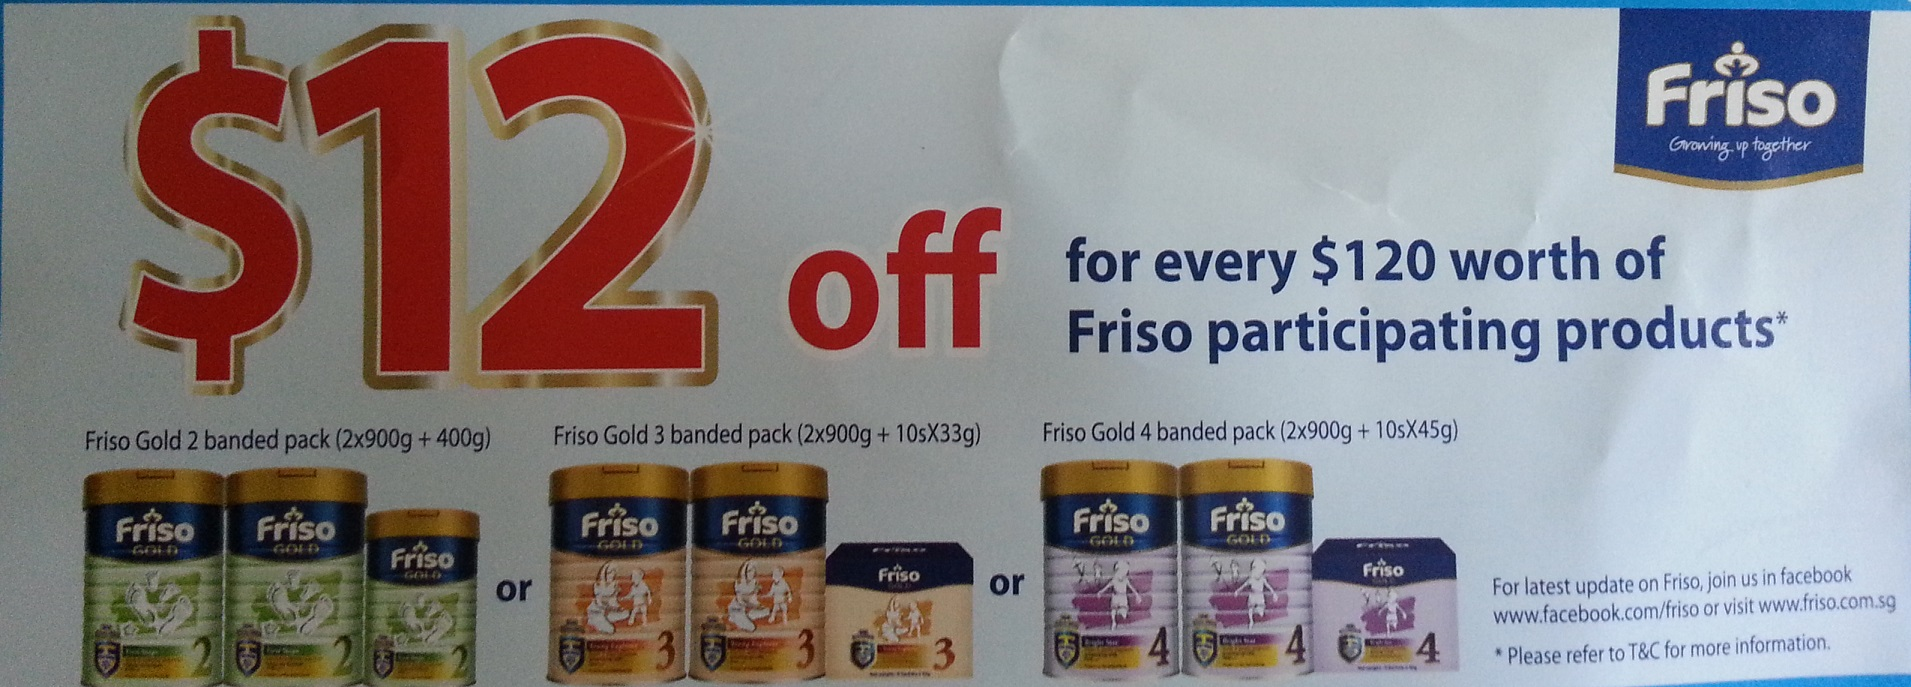 Friso Promotion Twin Pack With Free Sachets And Voucher Frisolac Gold 2 900gr